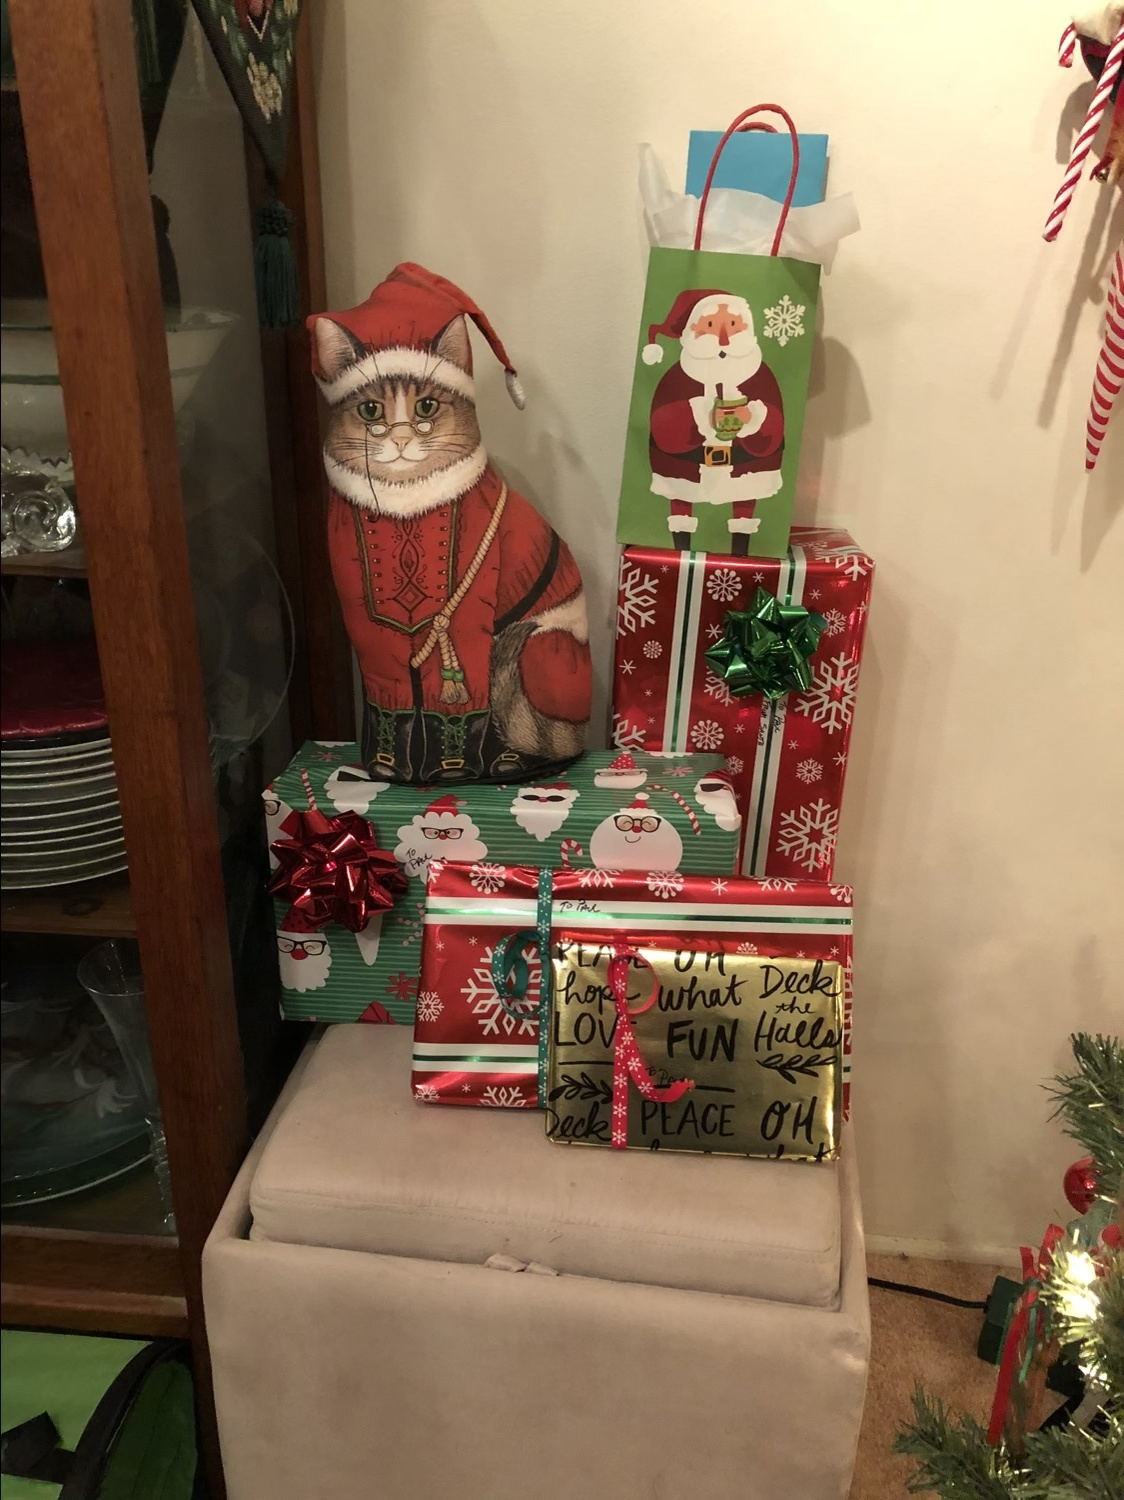 the Santa cat pillow sees you when you're sleeping…